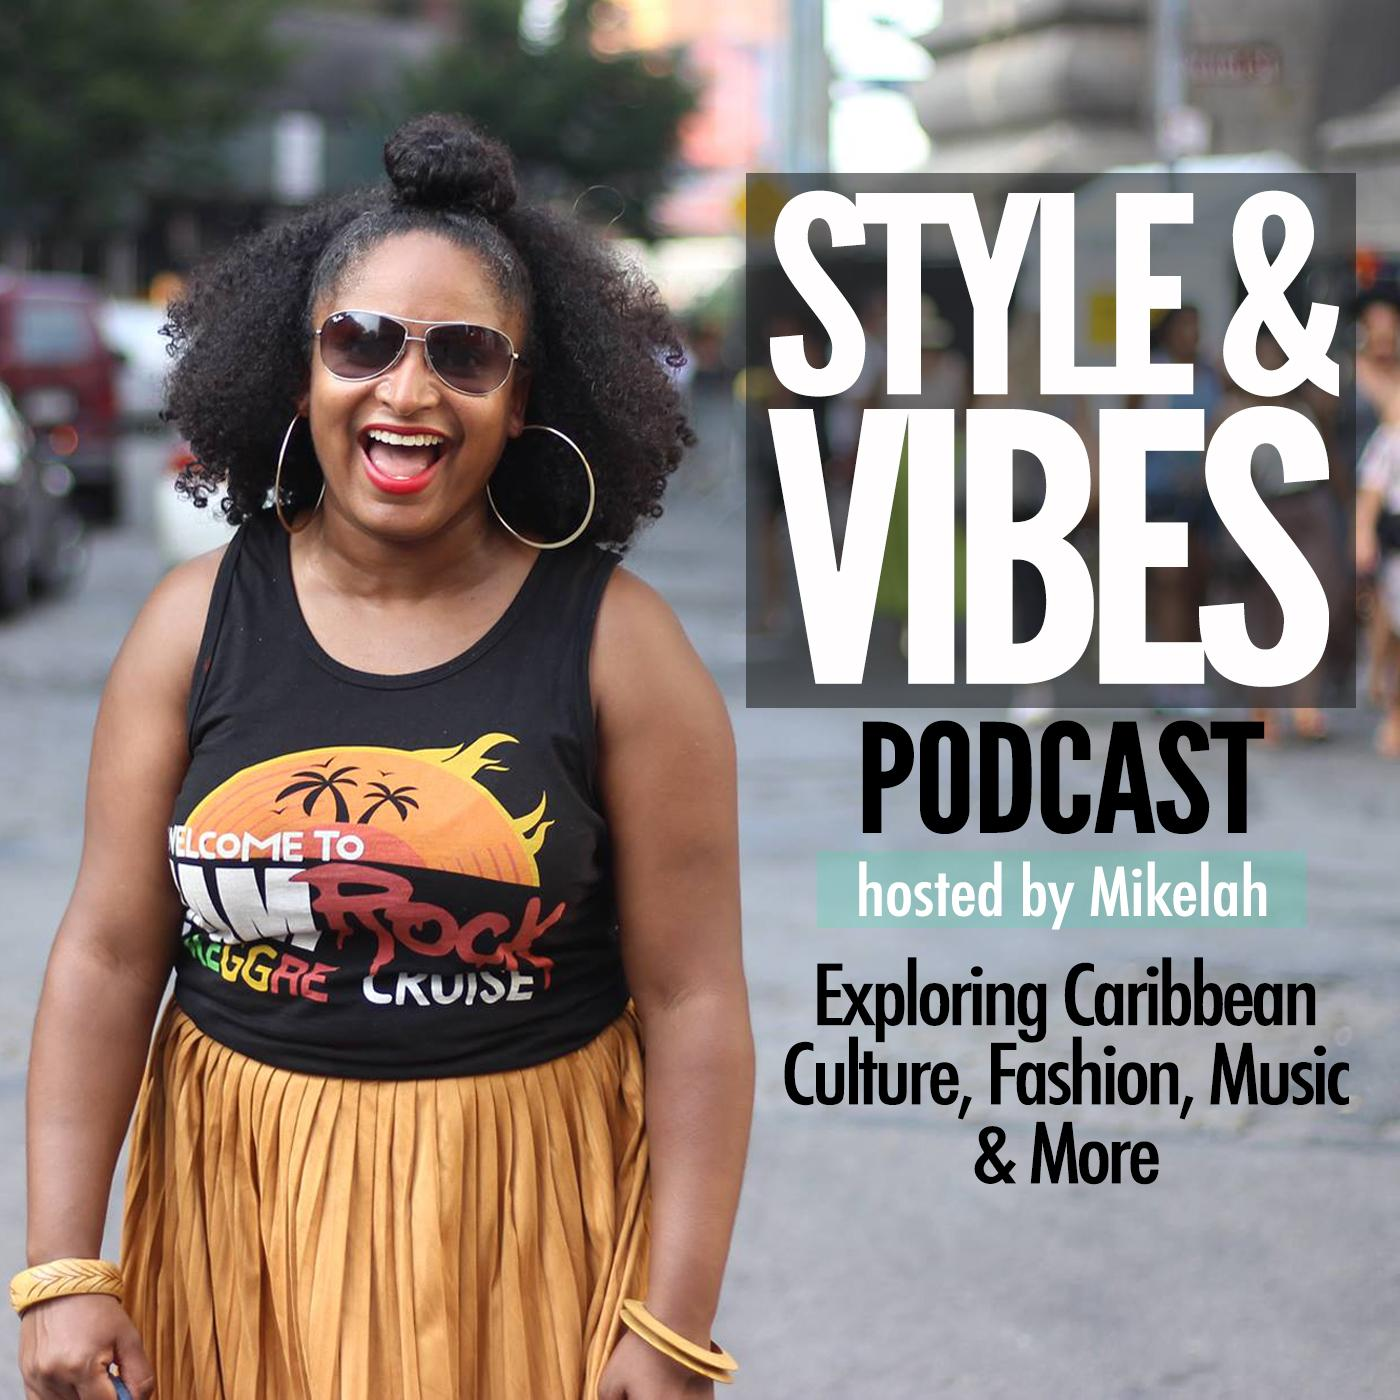 Introducing The Style & Vibes Podcast with Mikelah Rose